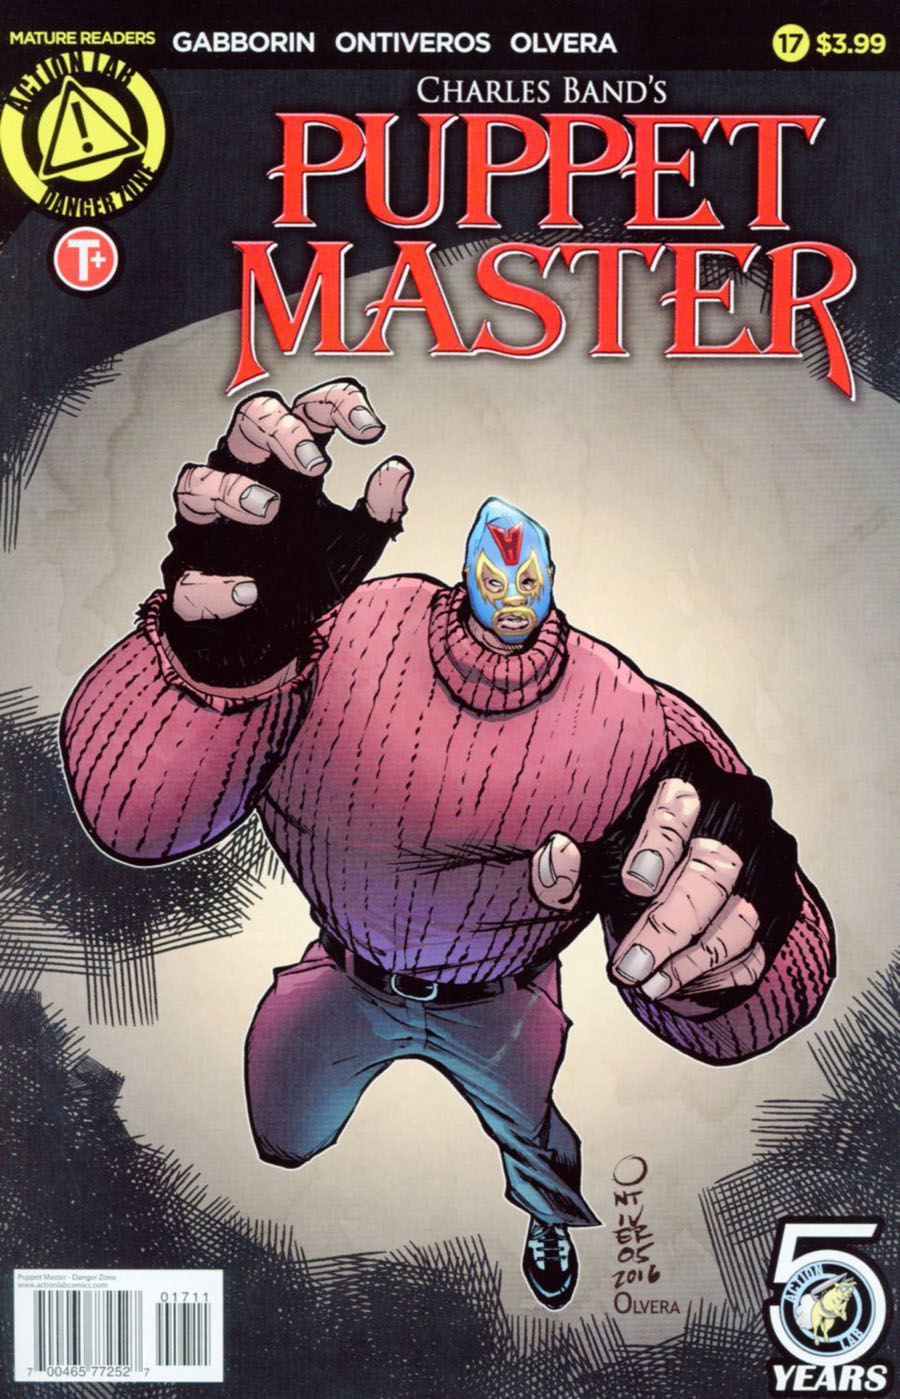 Puppet Master #17 Cover A Regular Antonio Ontiveros Cover